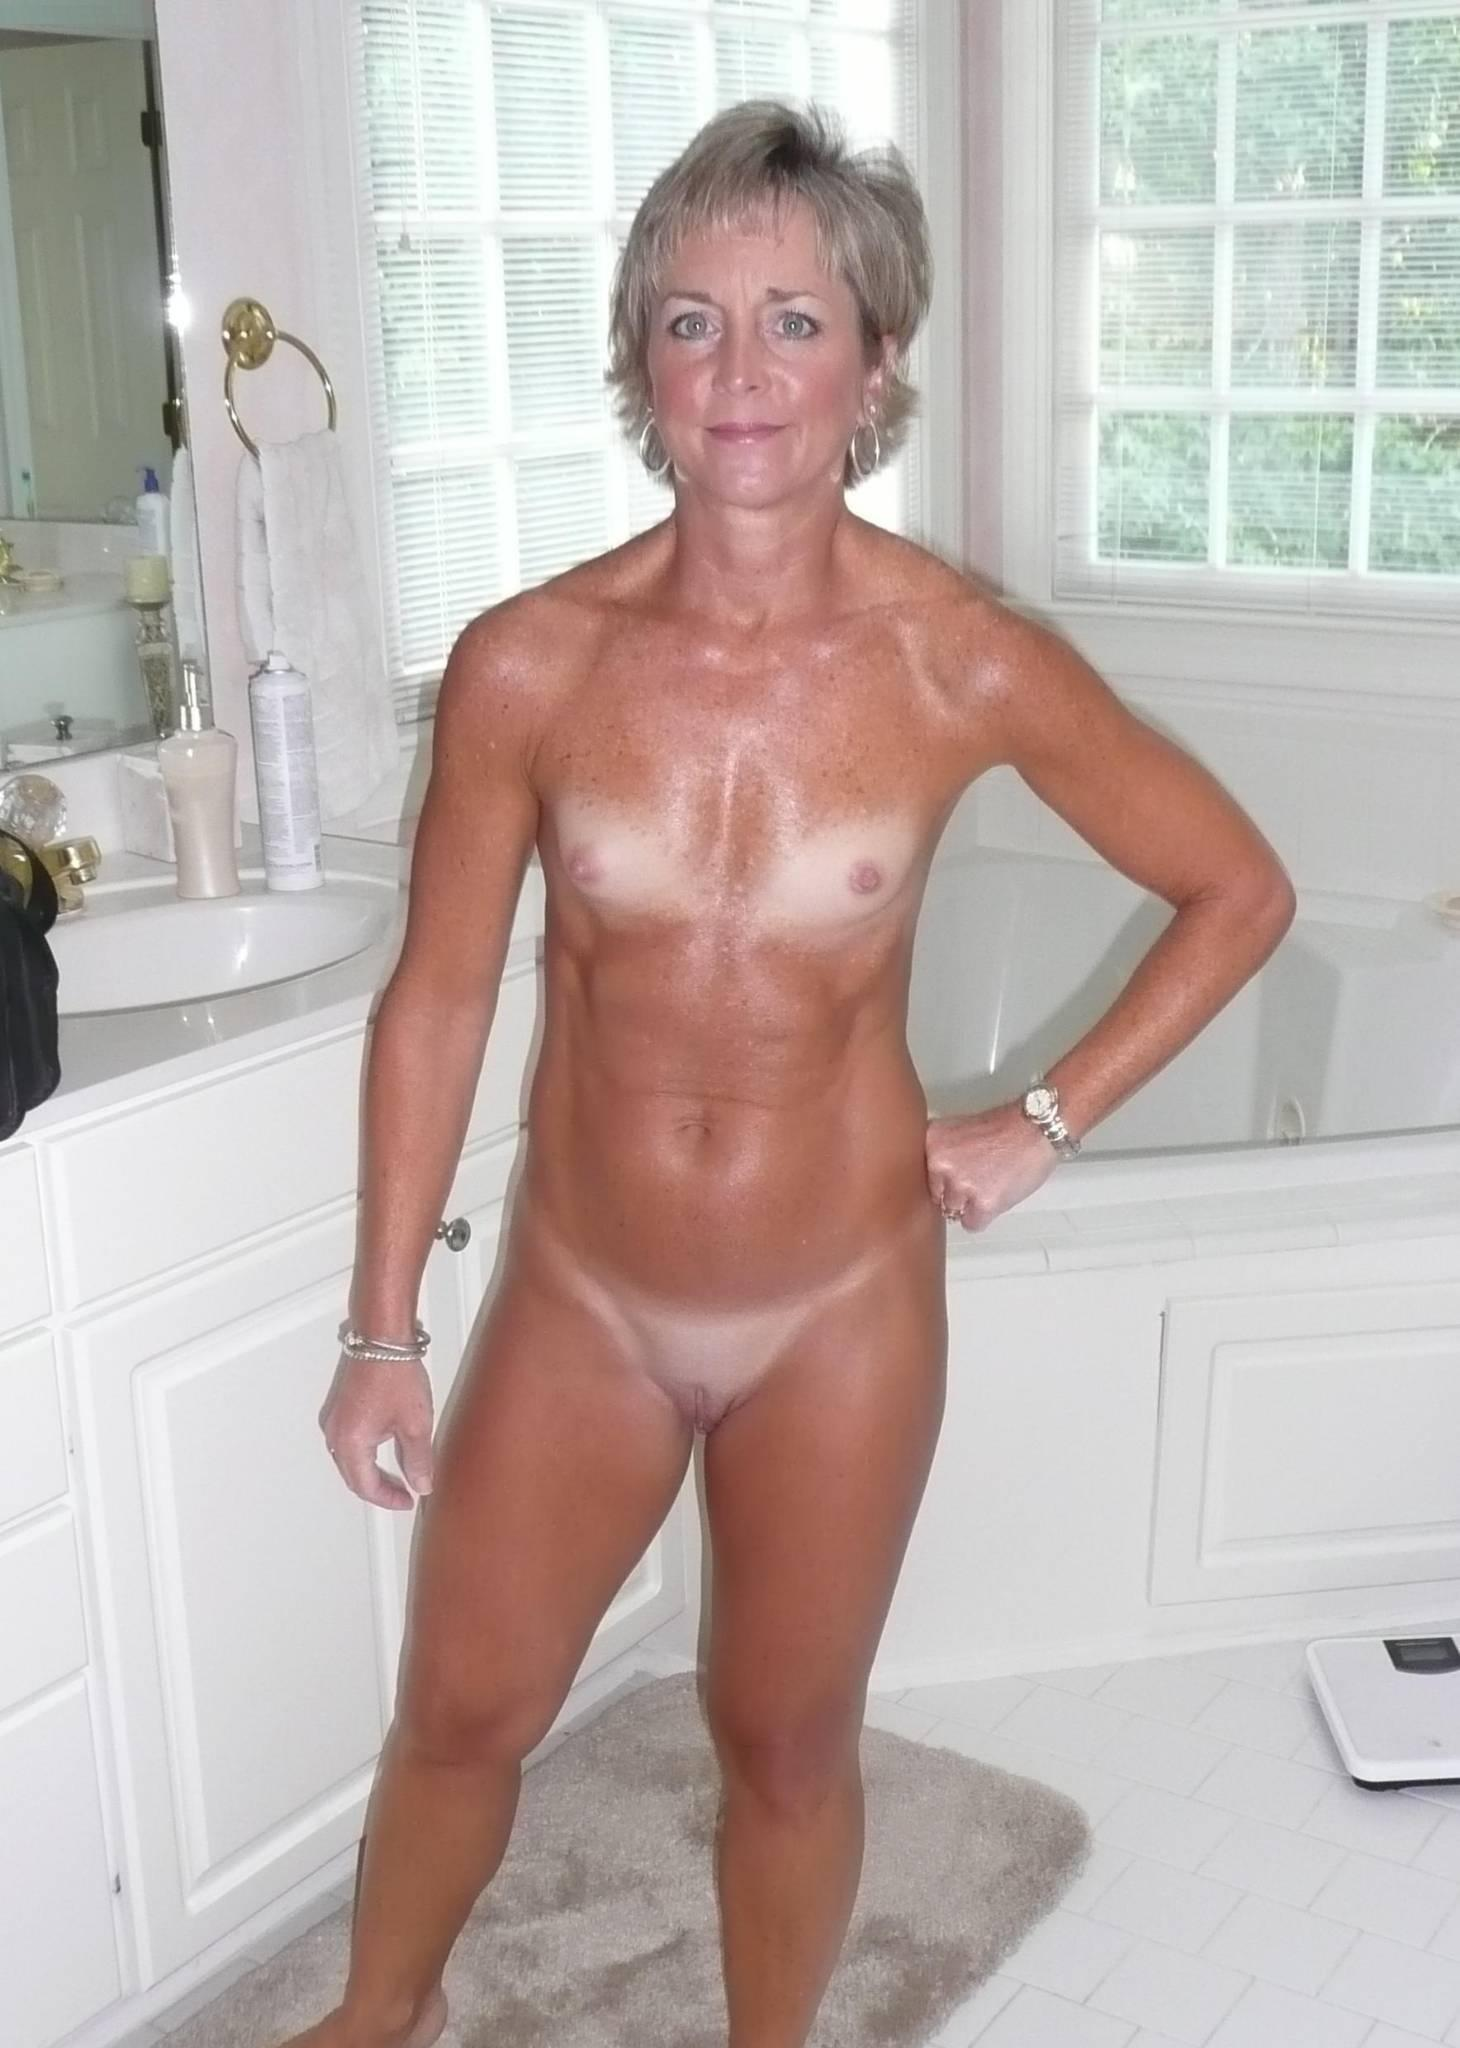 One tree hill nude